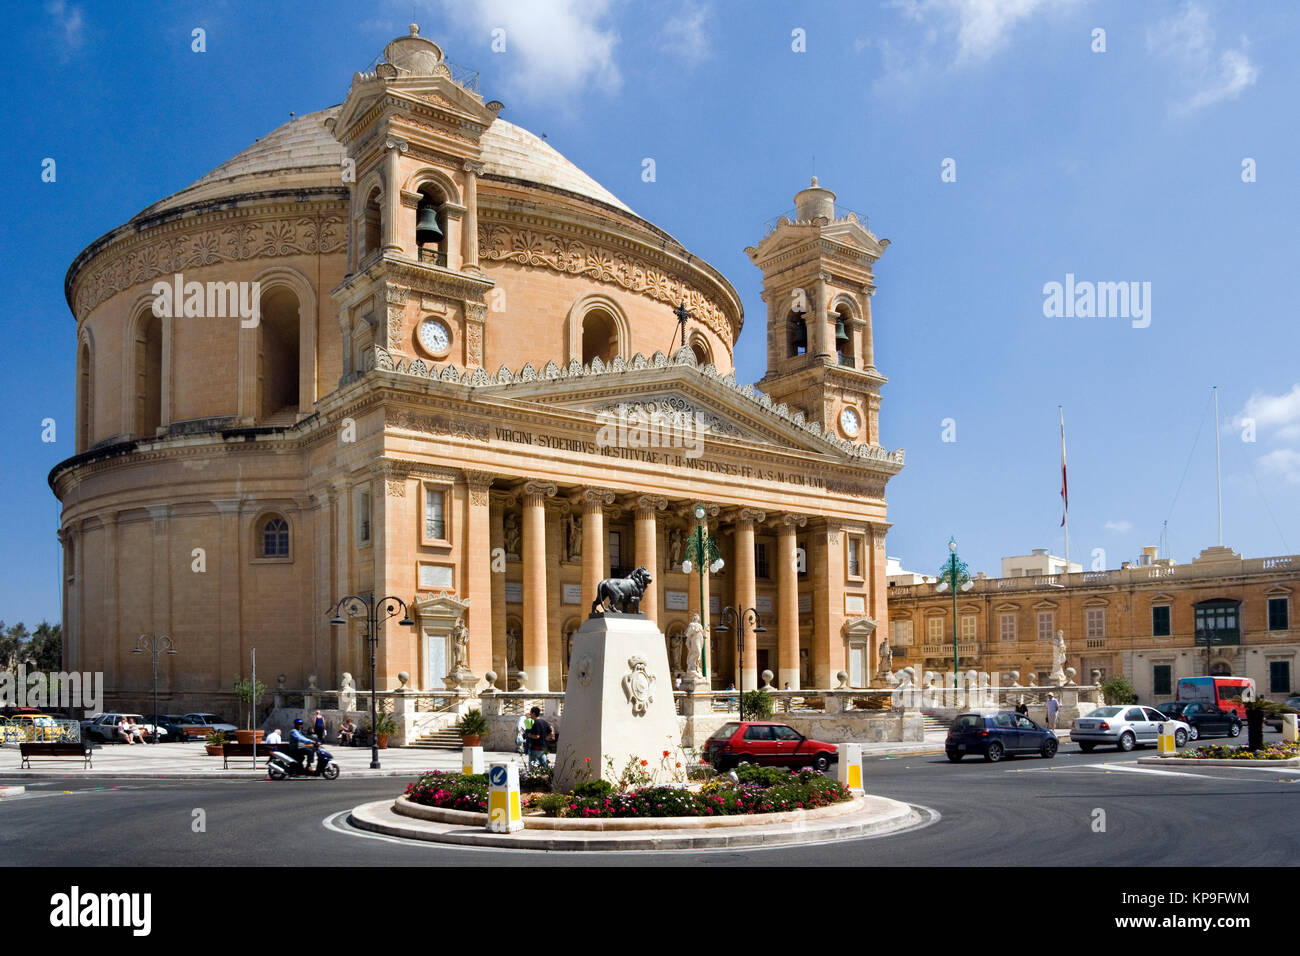 The Rotunda in the town of Mosta on the Island of Malta. The Cupola is one of the largest in the world at 60 meters - Stock Image